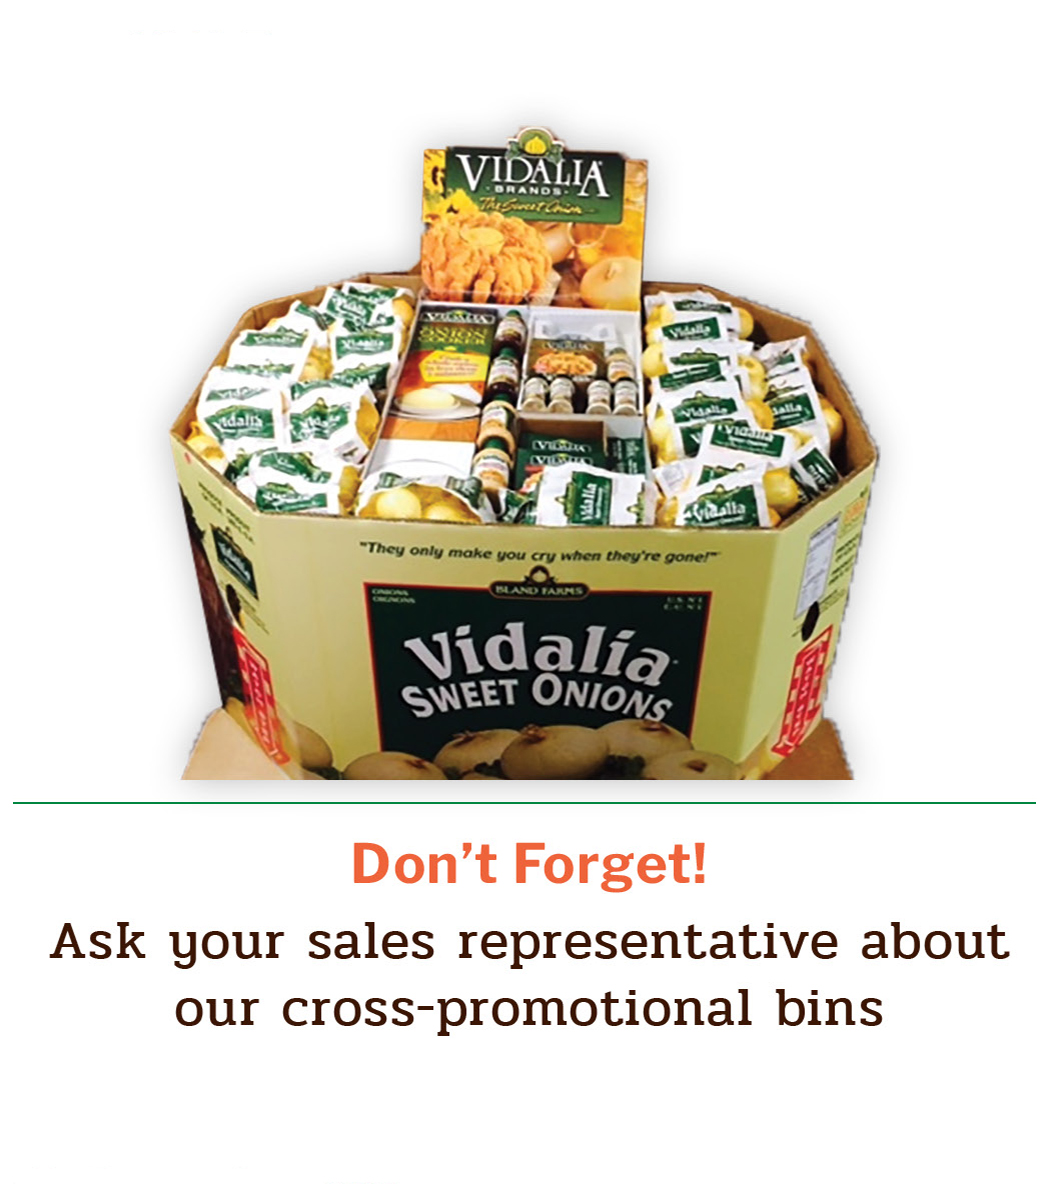 Cross Promotion Bins